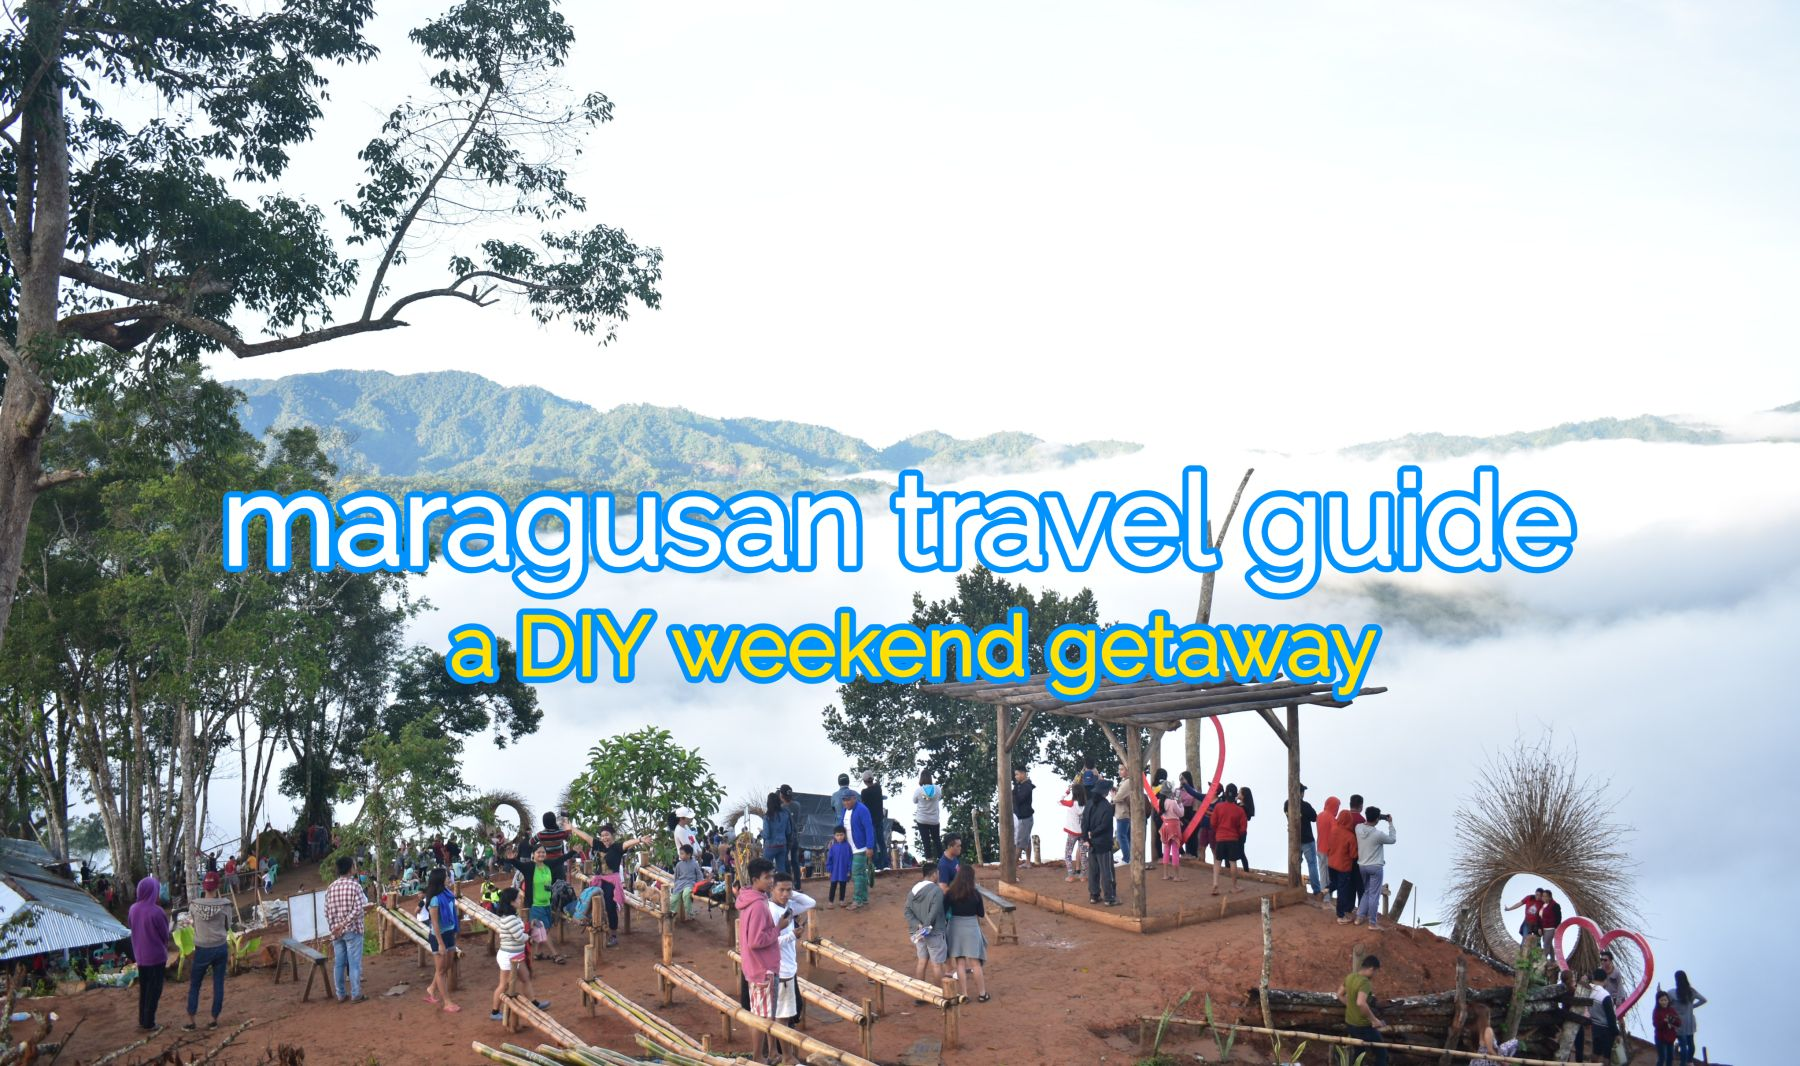 MARAGUSAN WEEKEND TRAVEL GUIDE: ATTRACTIONS TO VISIT + ACCOMMODATION & BUDGET